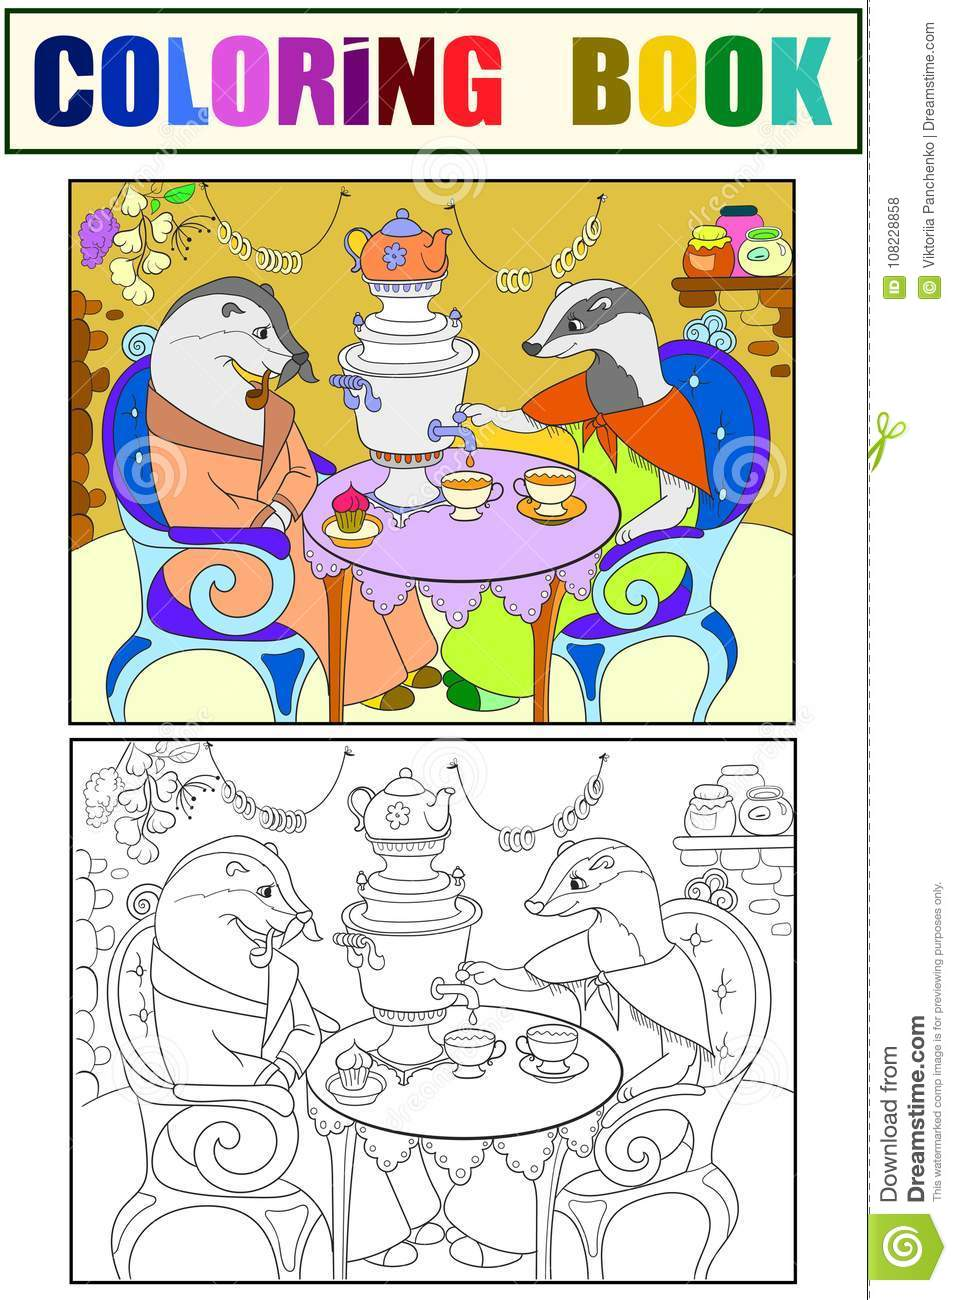 Family Of Badgers In Their House In The Kitchen Coloring Book For ...